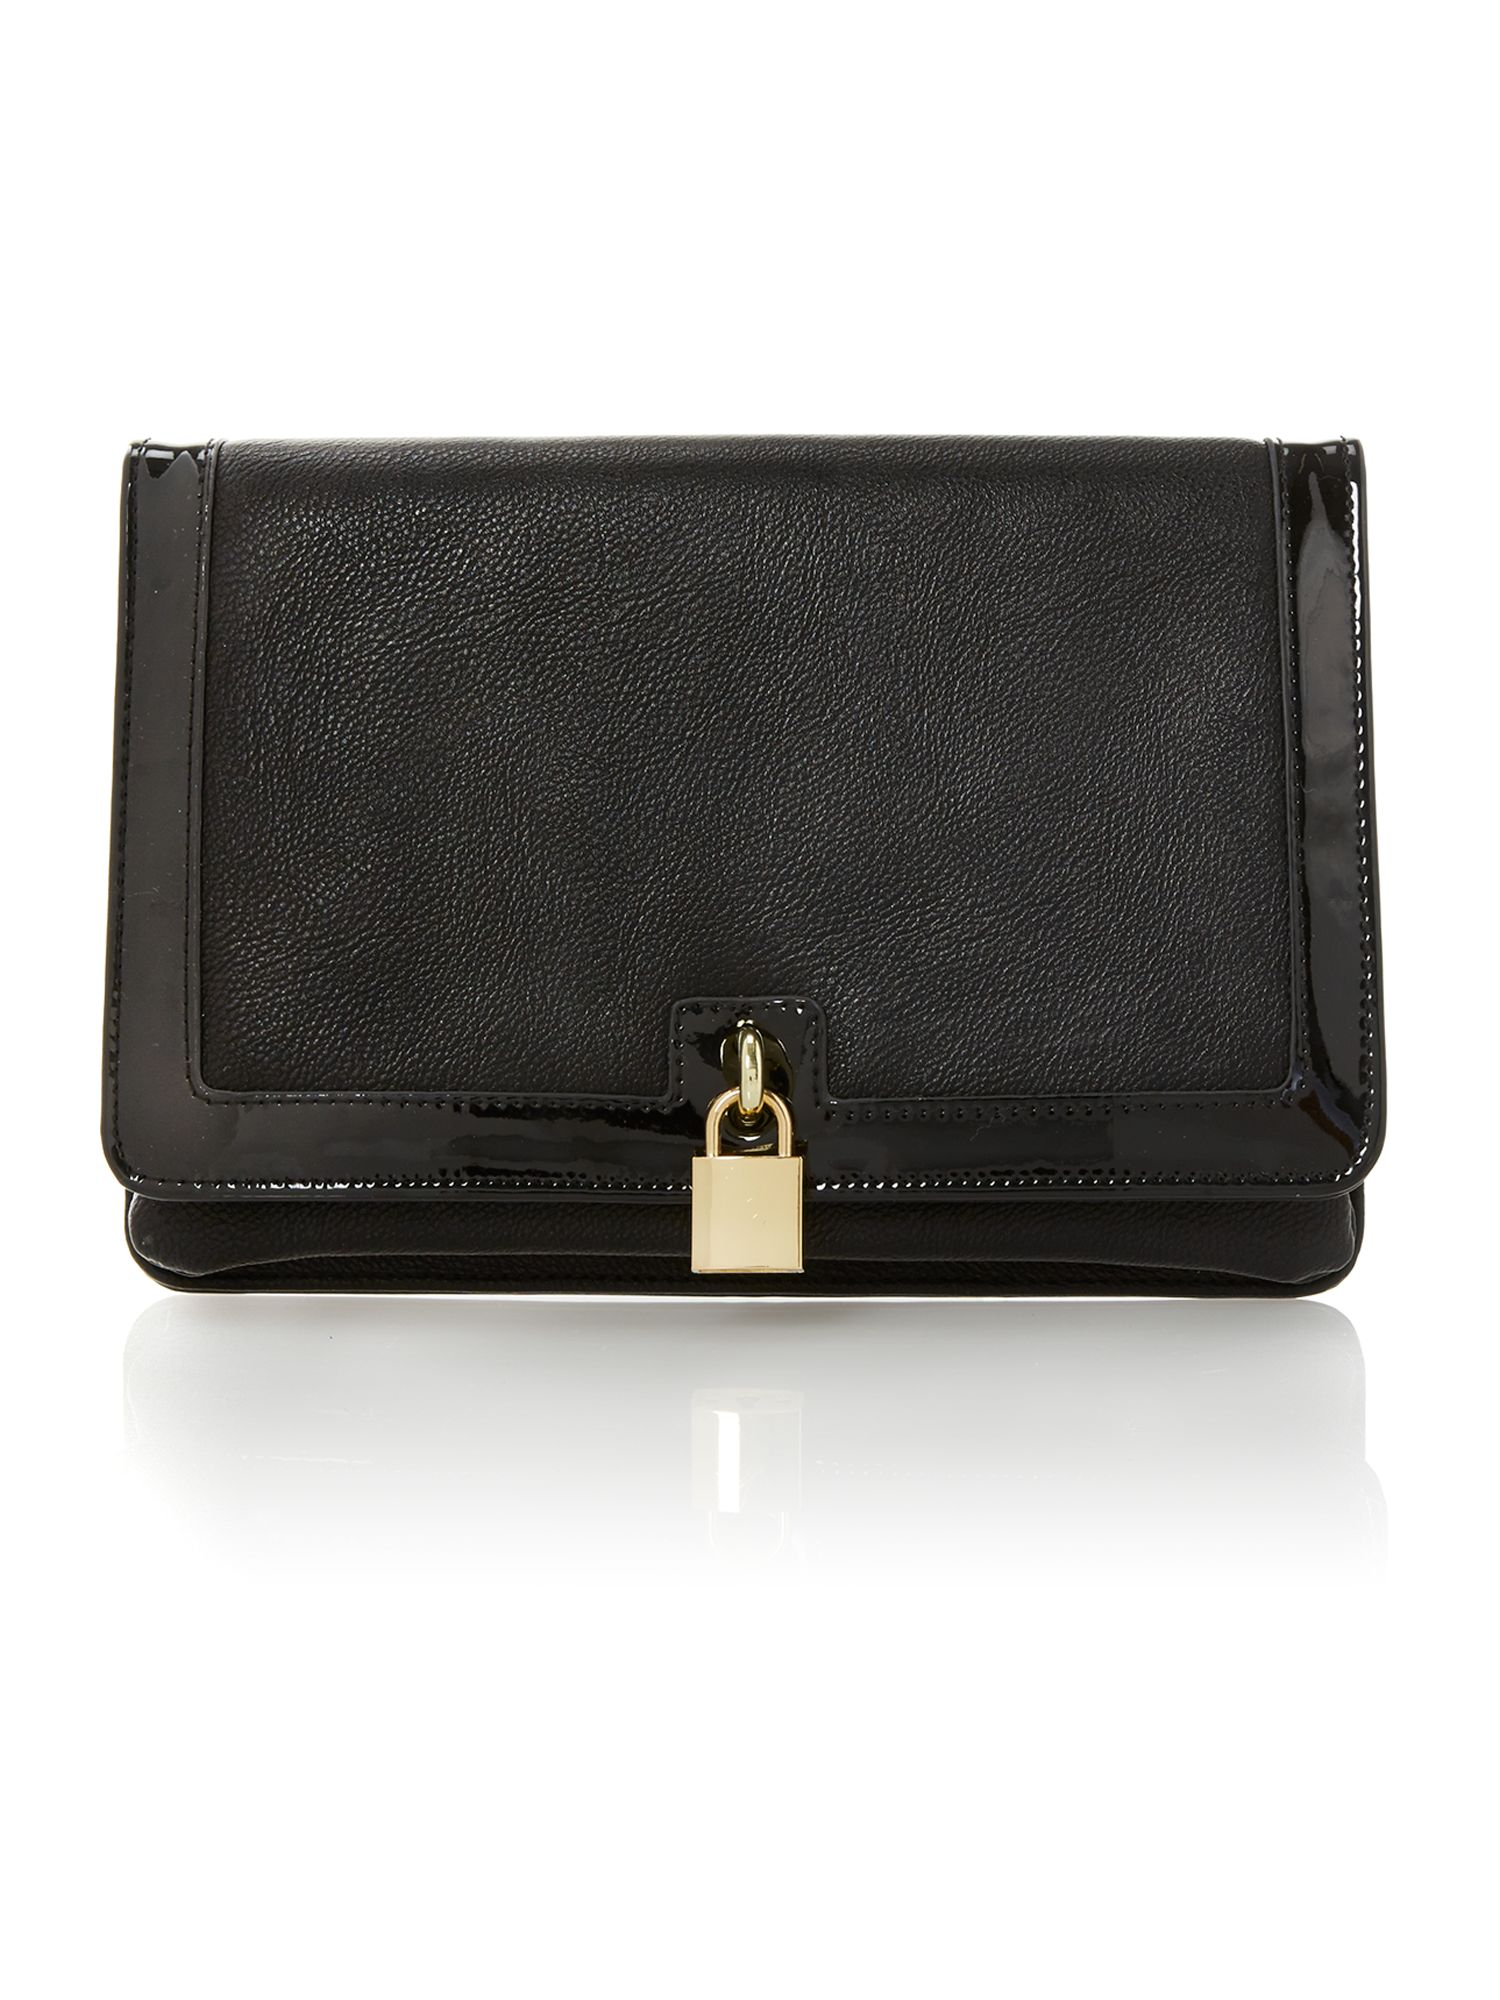 Antonio clutch handbag